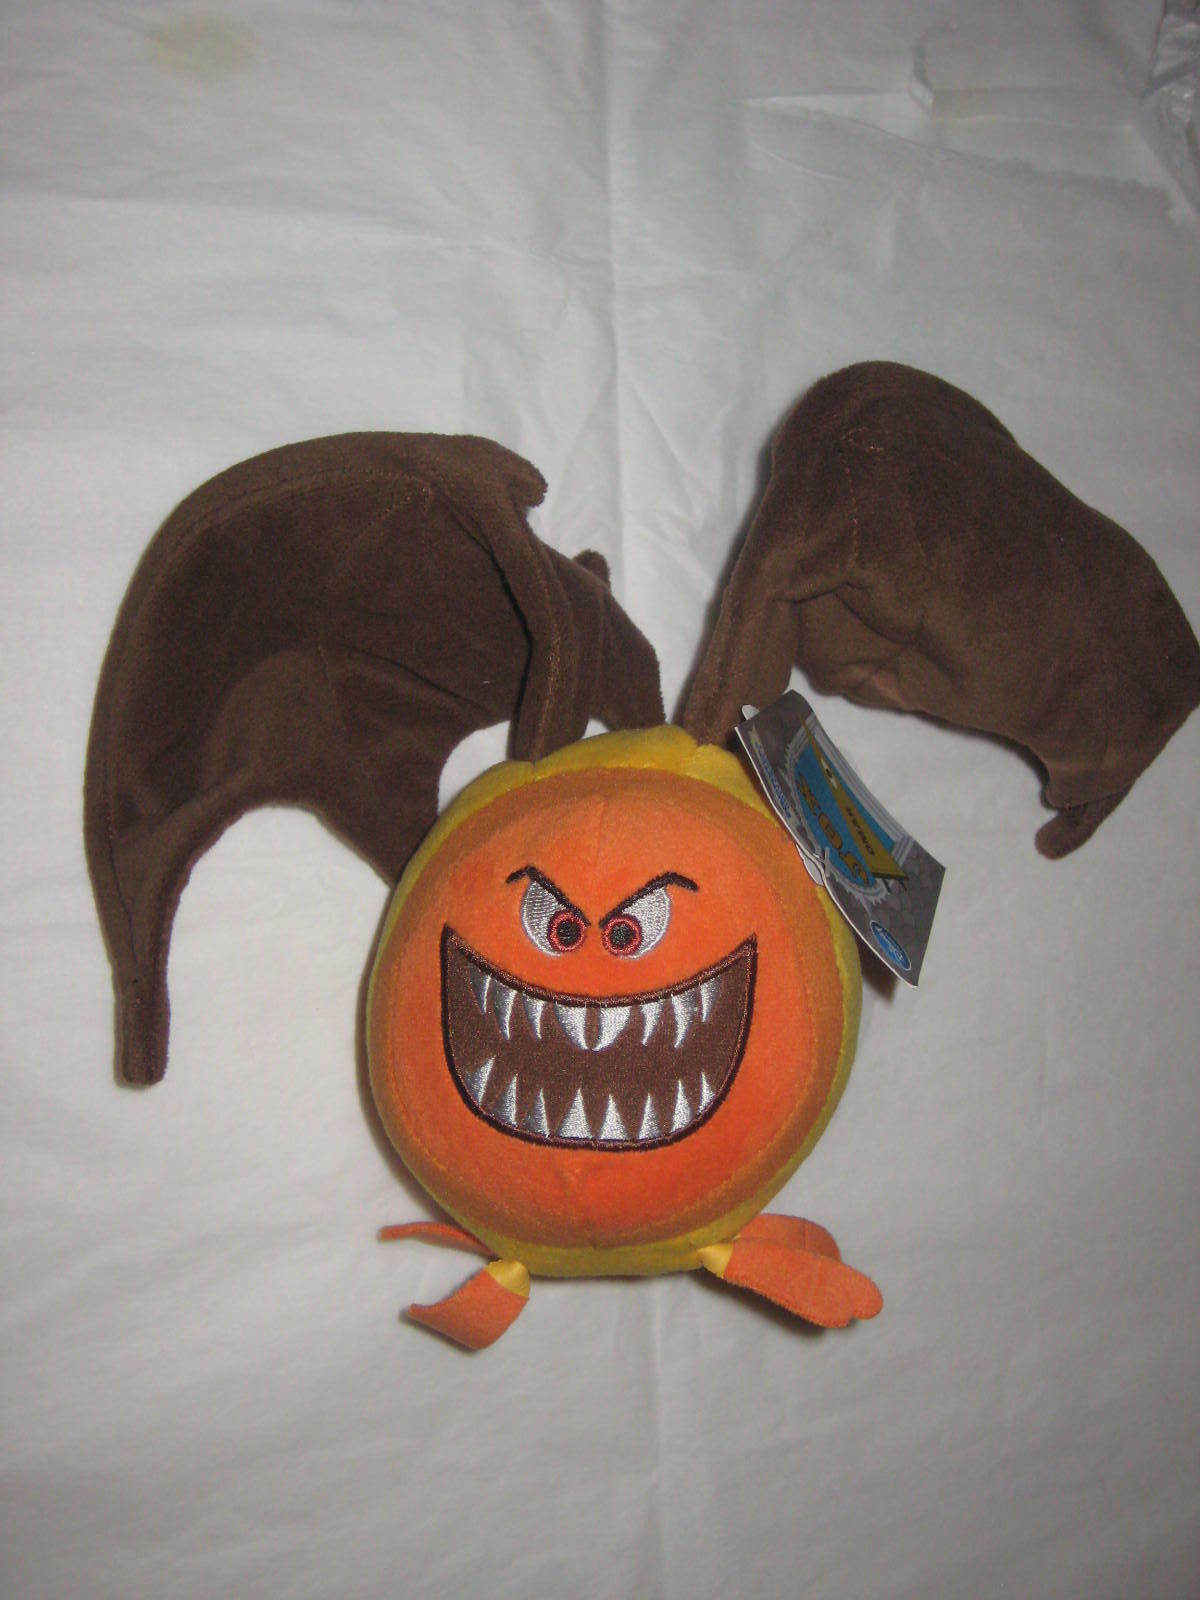 Primary image for Disney Pixar Omar  with Bat Wings Plush. From Monsters University. Brand New.